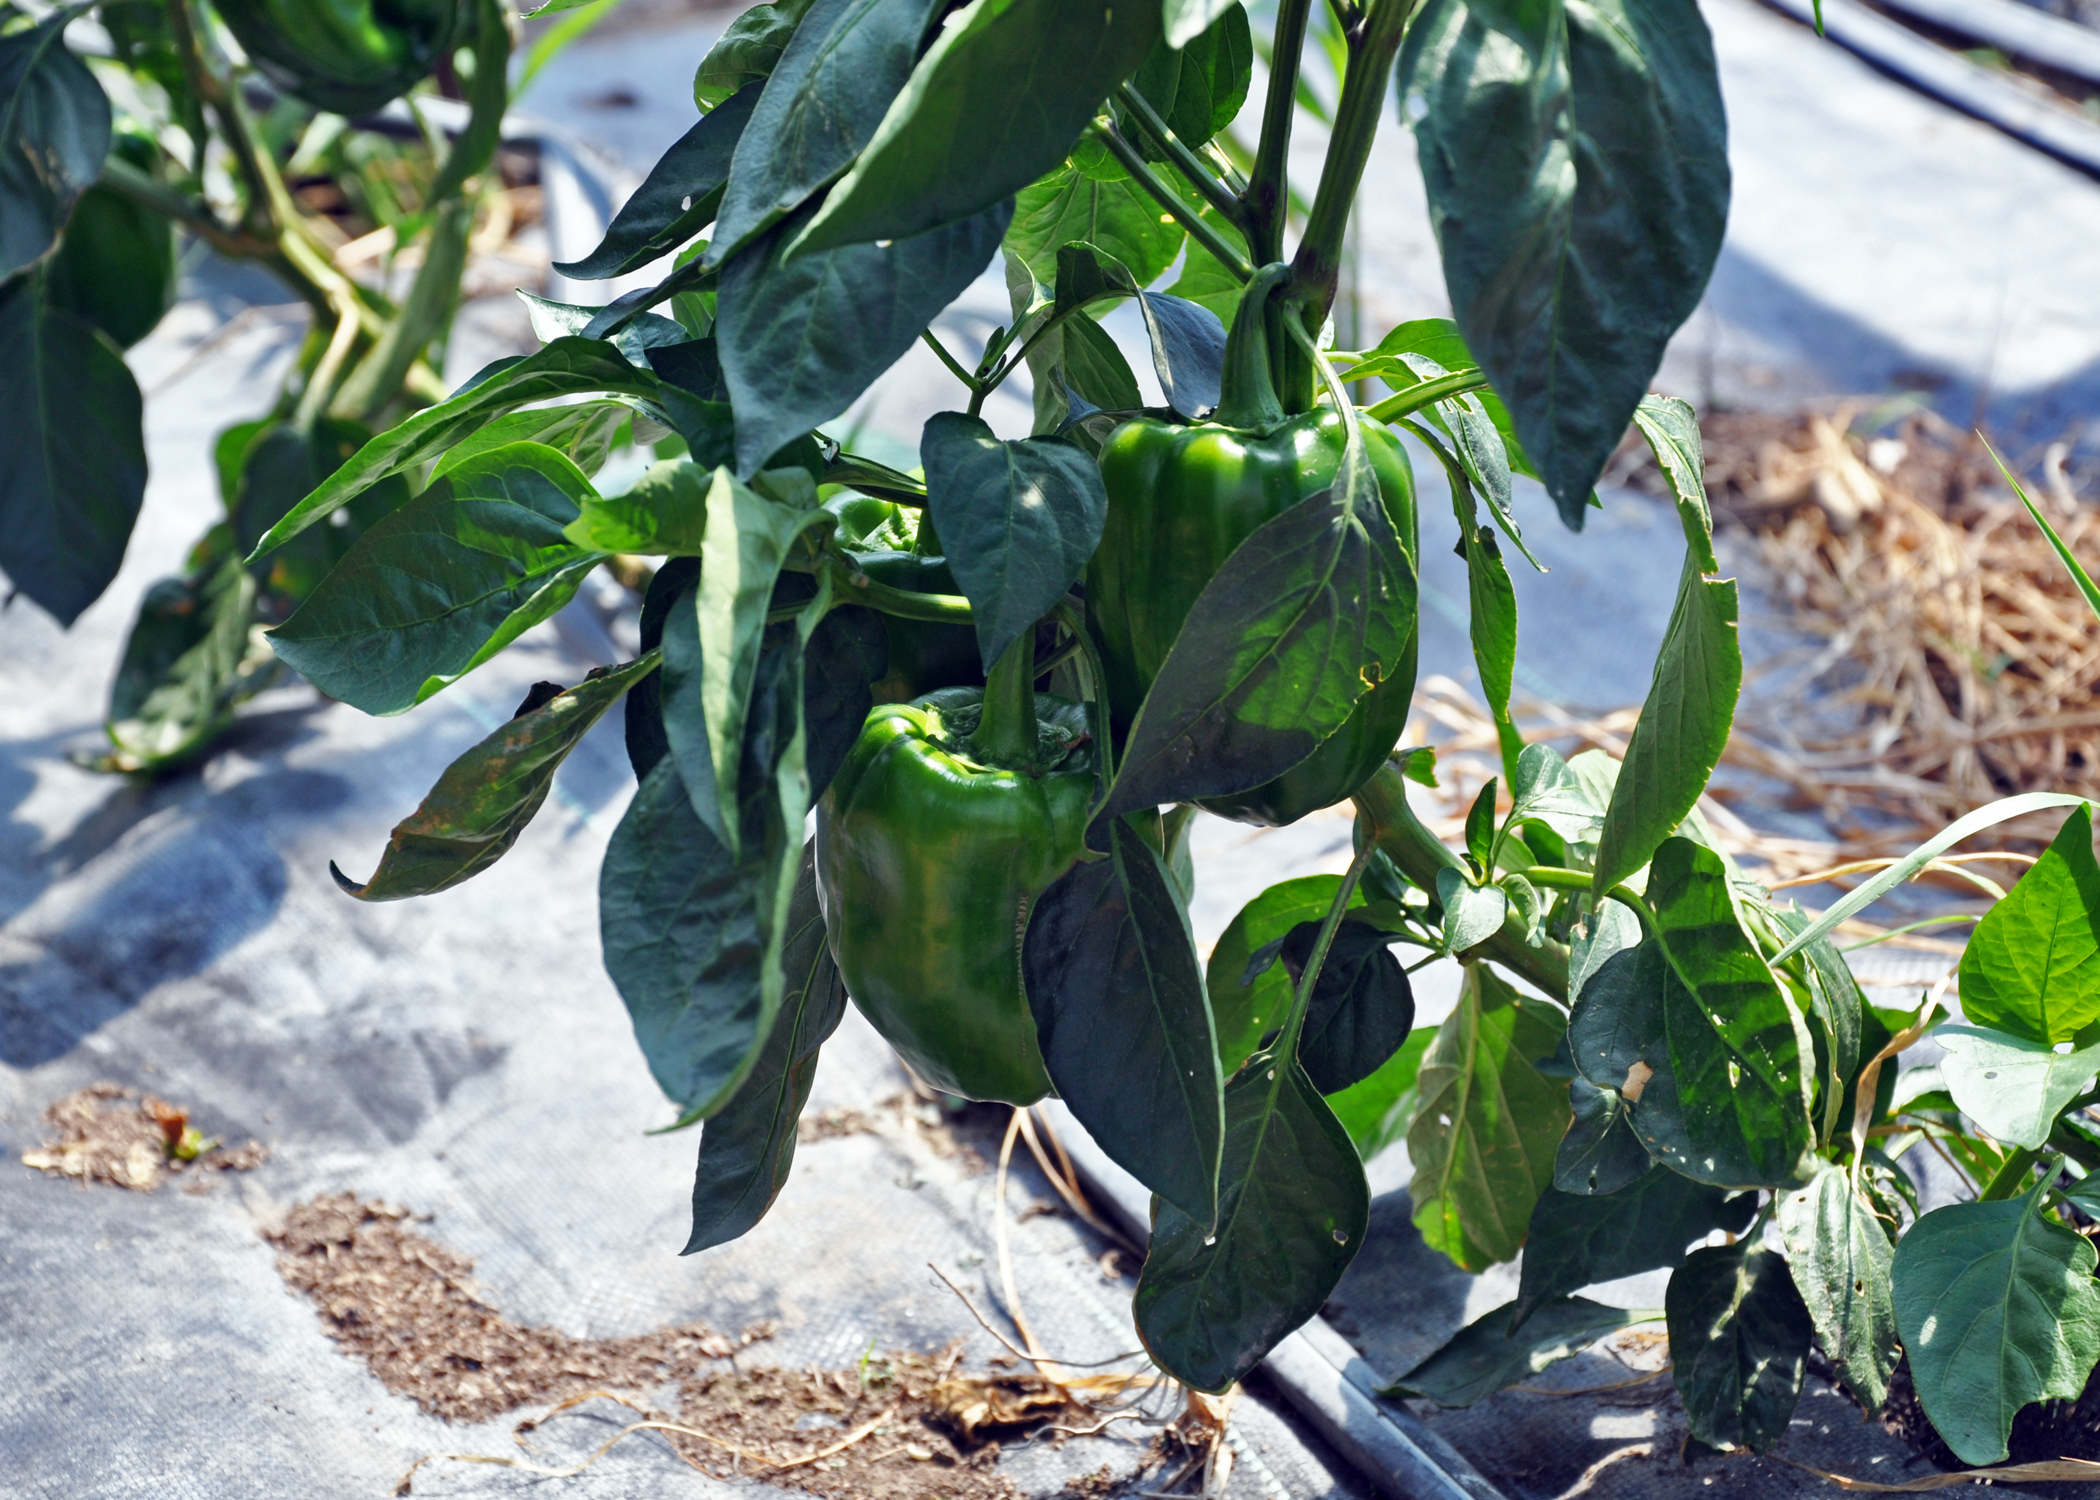 Green peppers growing in an Iowa seasonal high tunnel for crops in 2012.